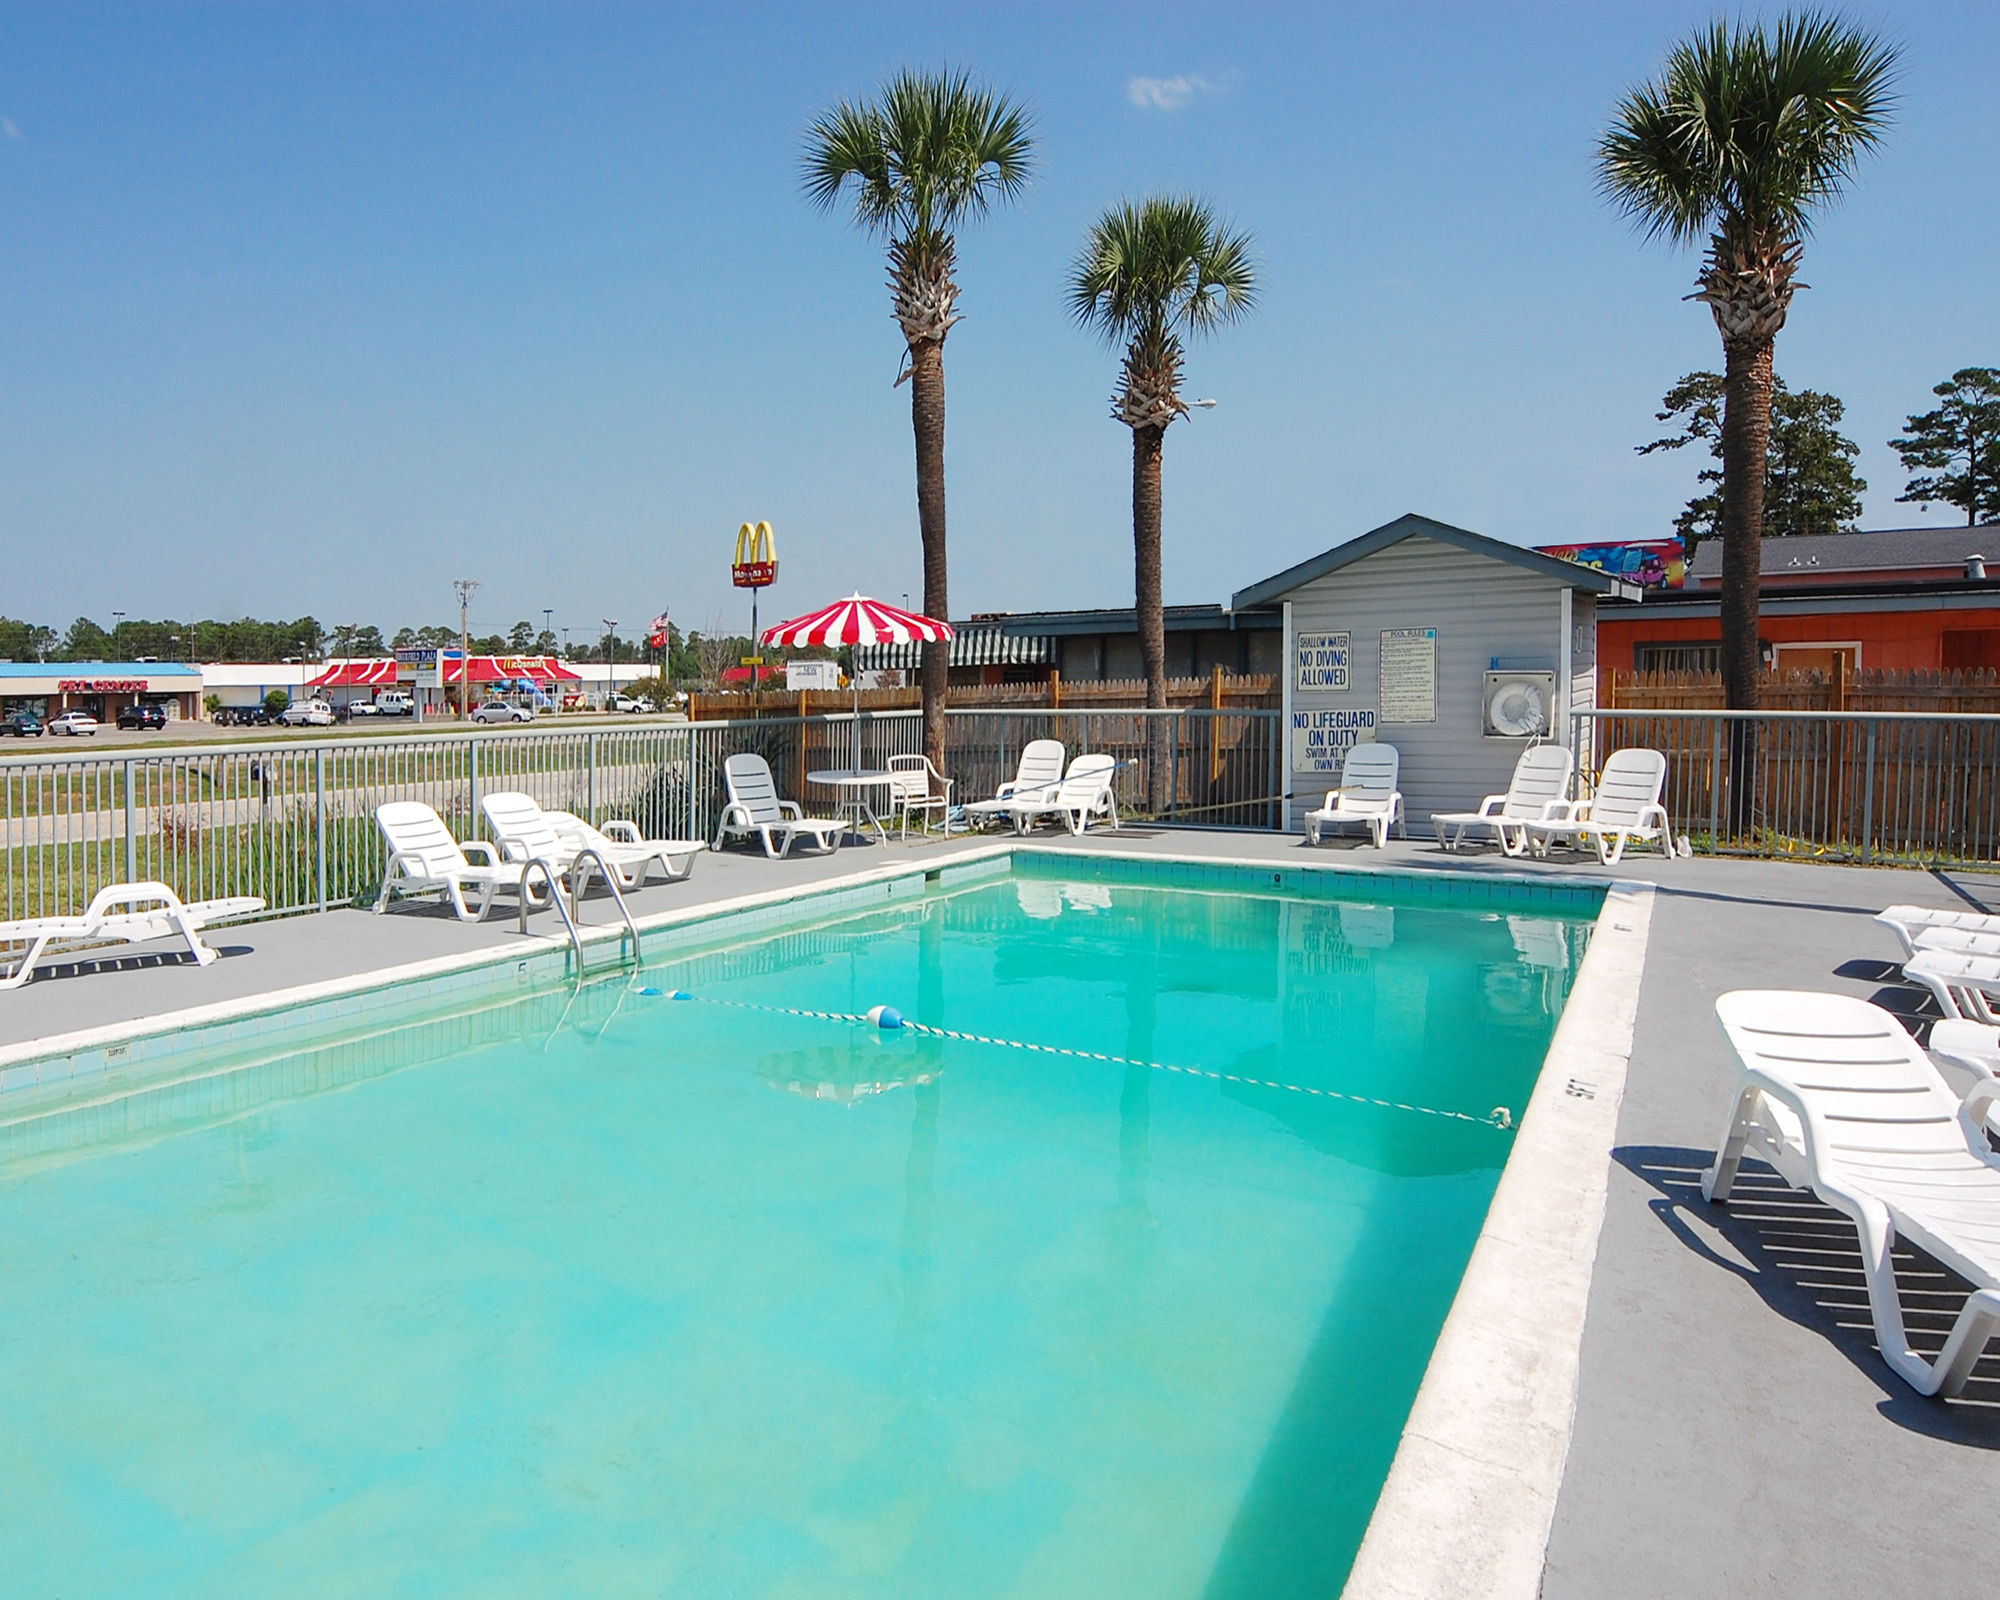 Rodeway Inn in Surfside Beach, SC